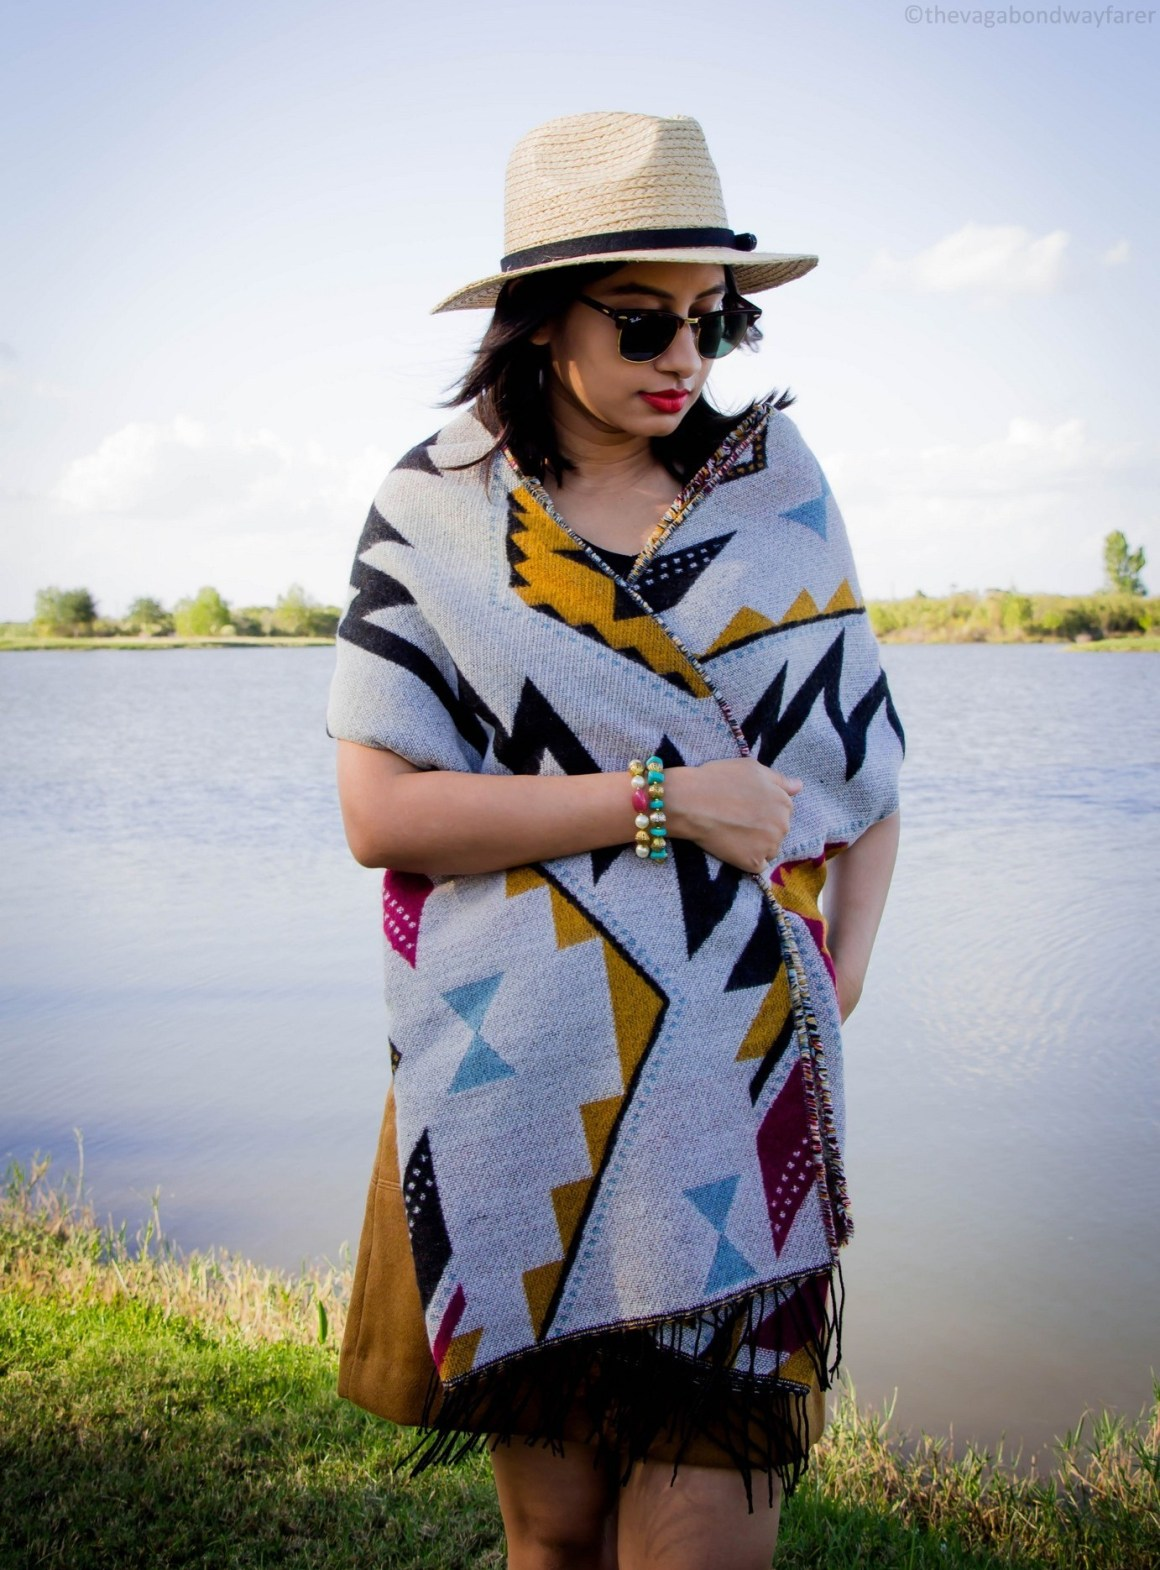 Blanket scarf - The Vagabond Wayfarer